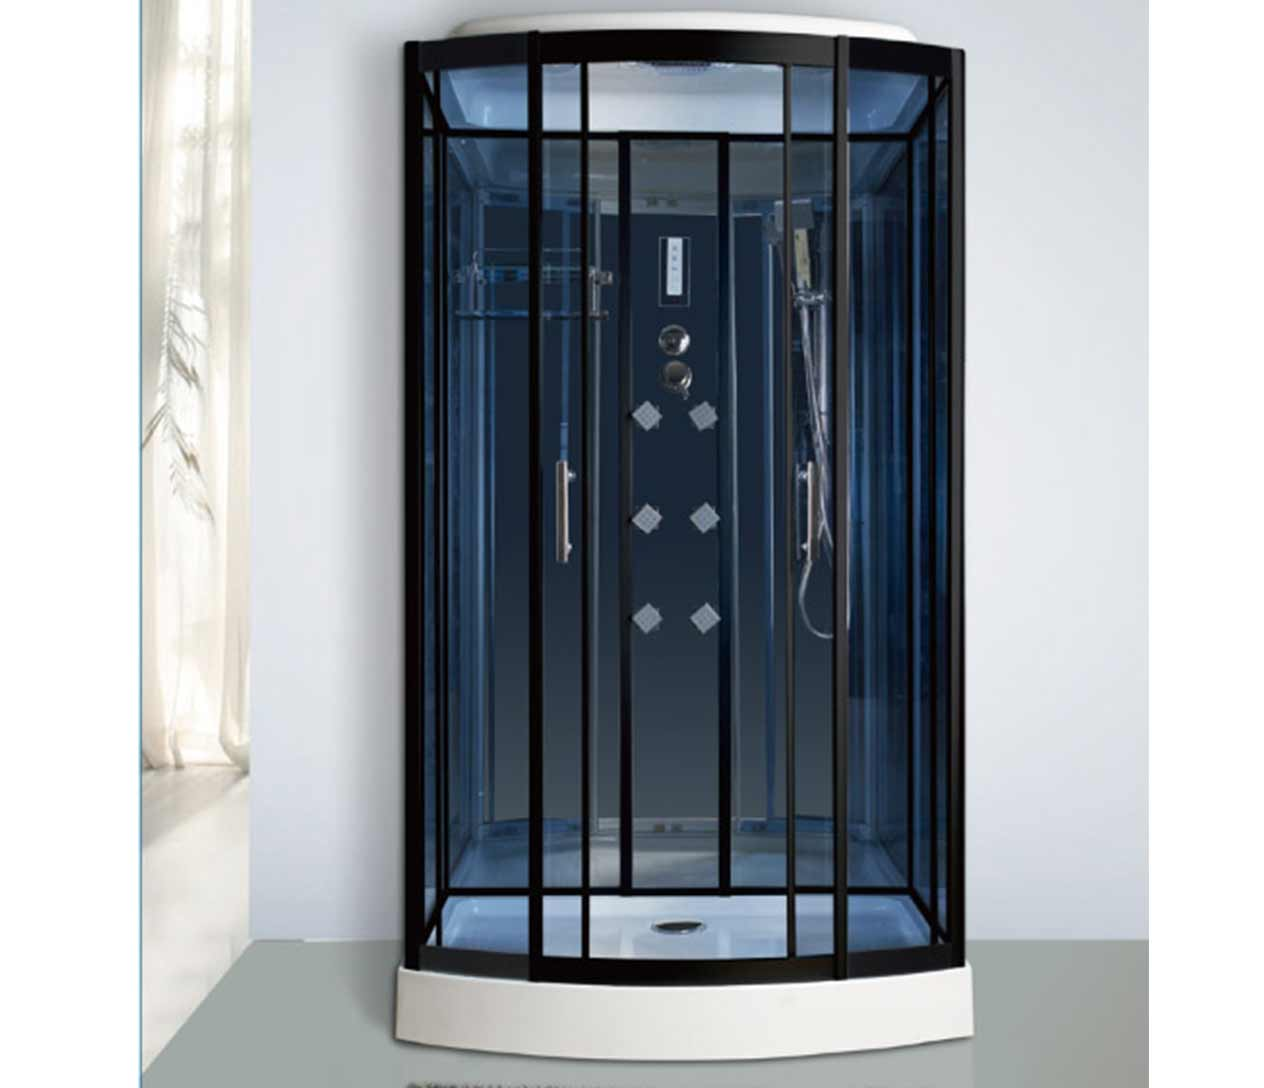 e 35 steam shower - Luxury Steam Showers